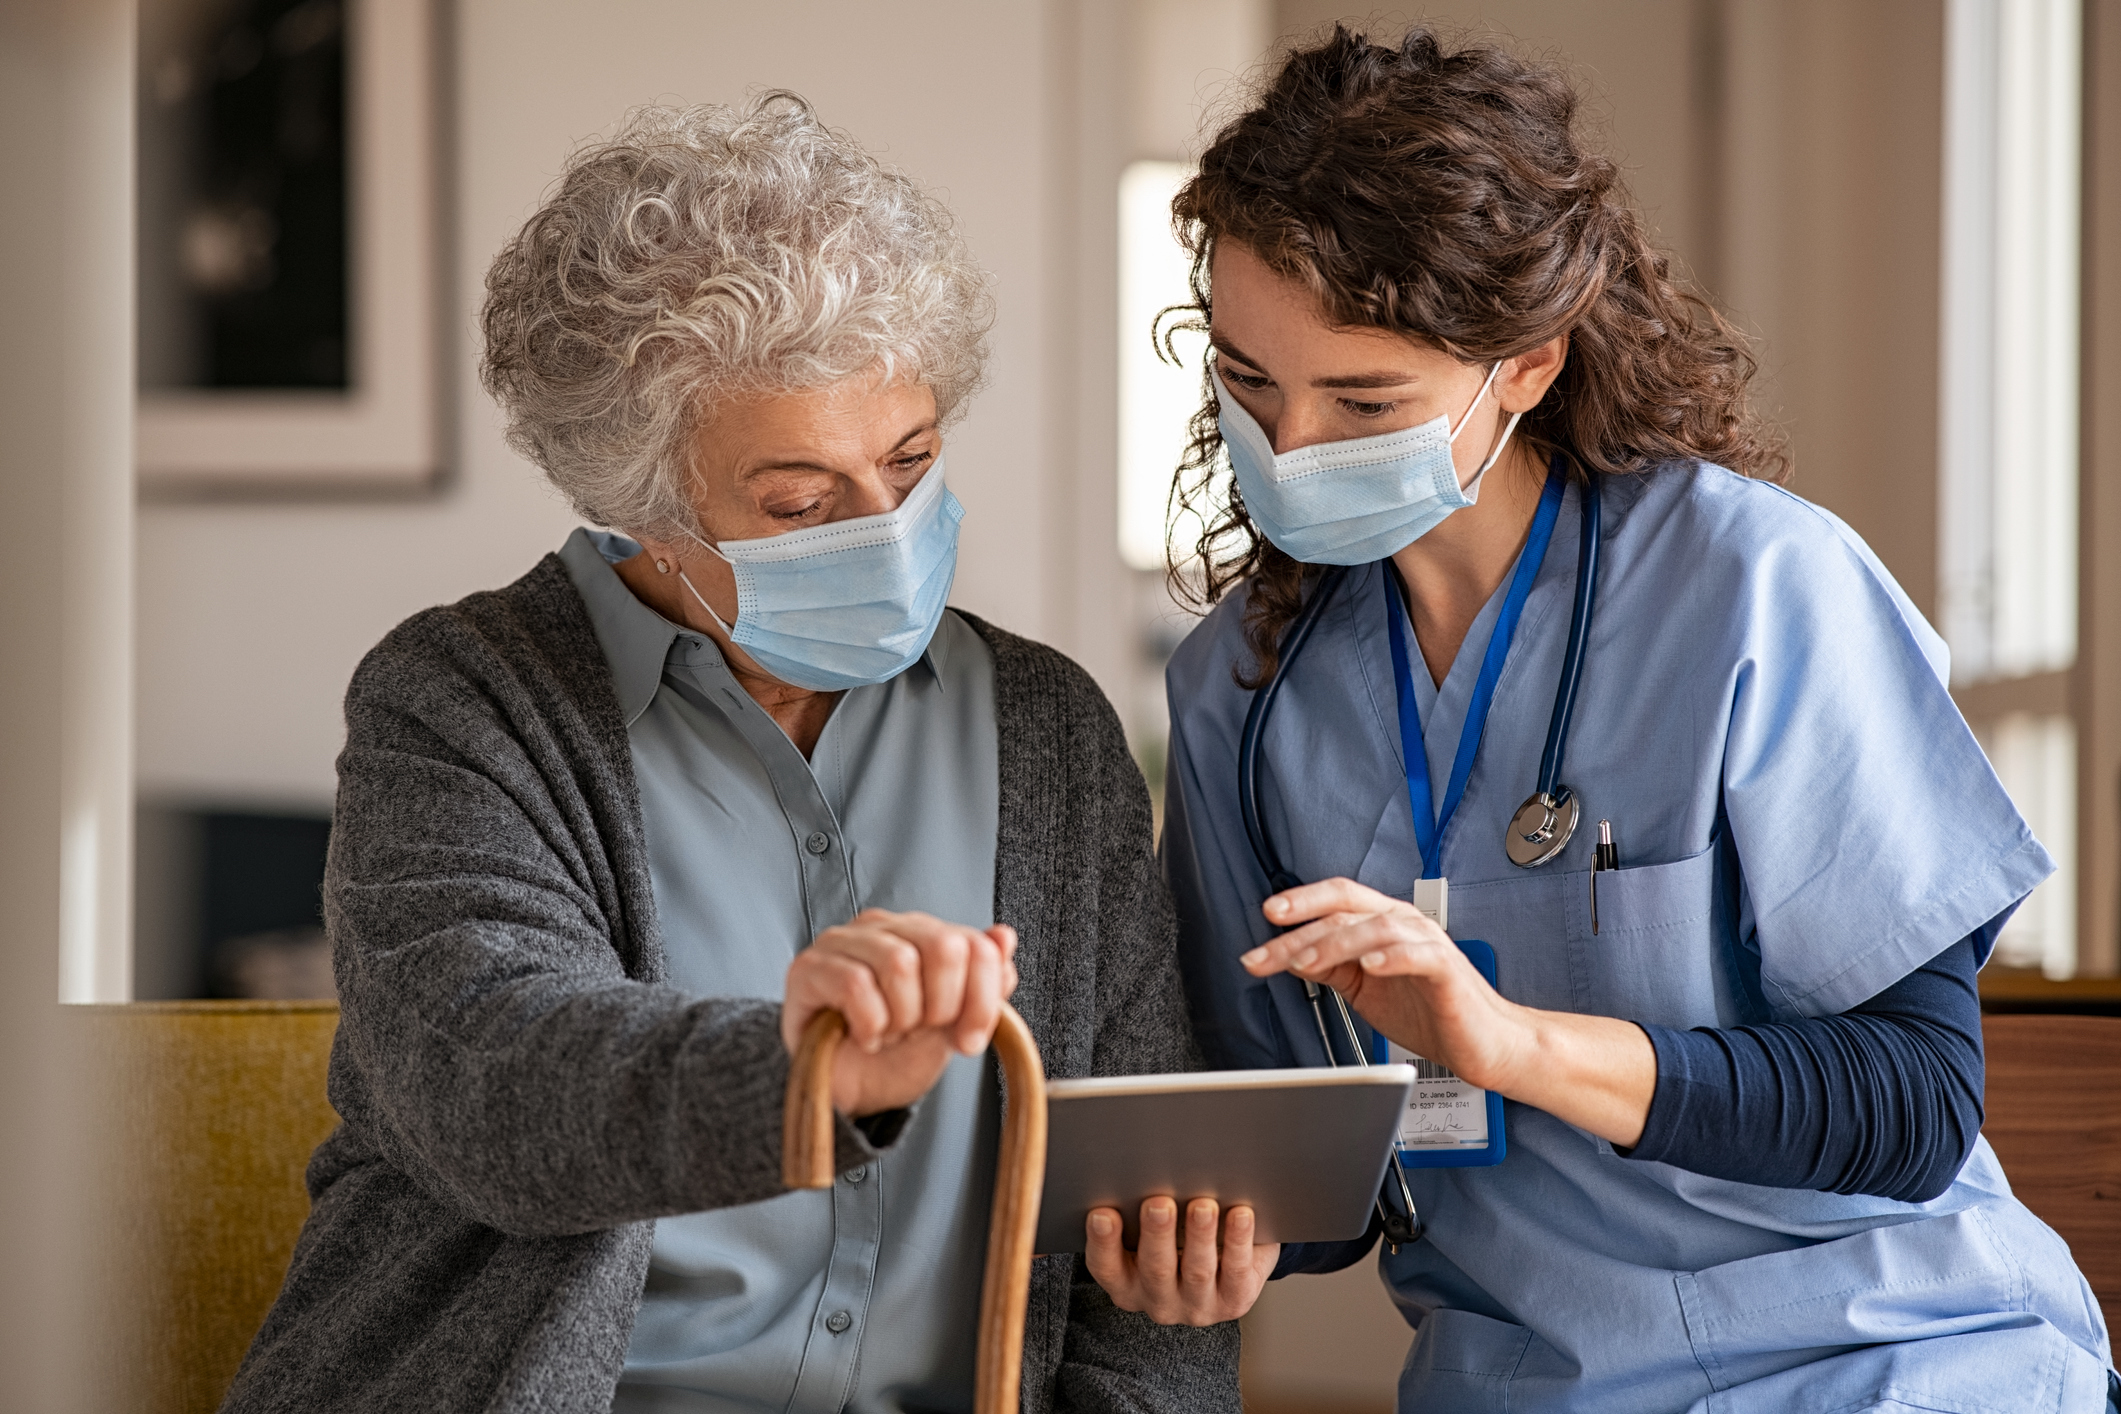 Serve Patients Better With an Inclusive User Experience